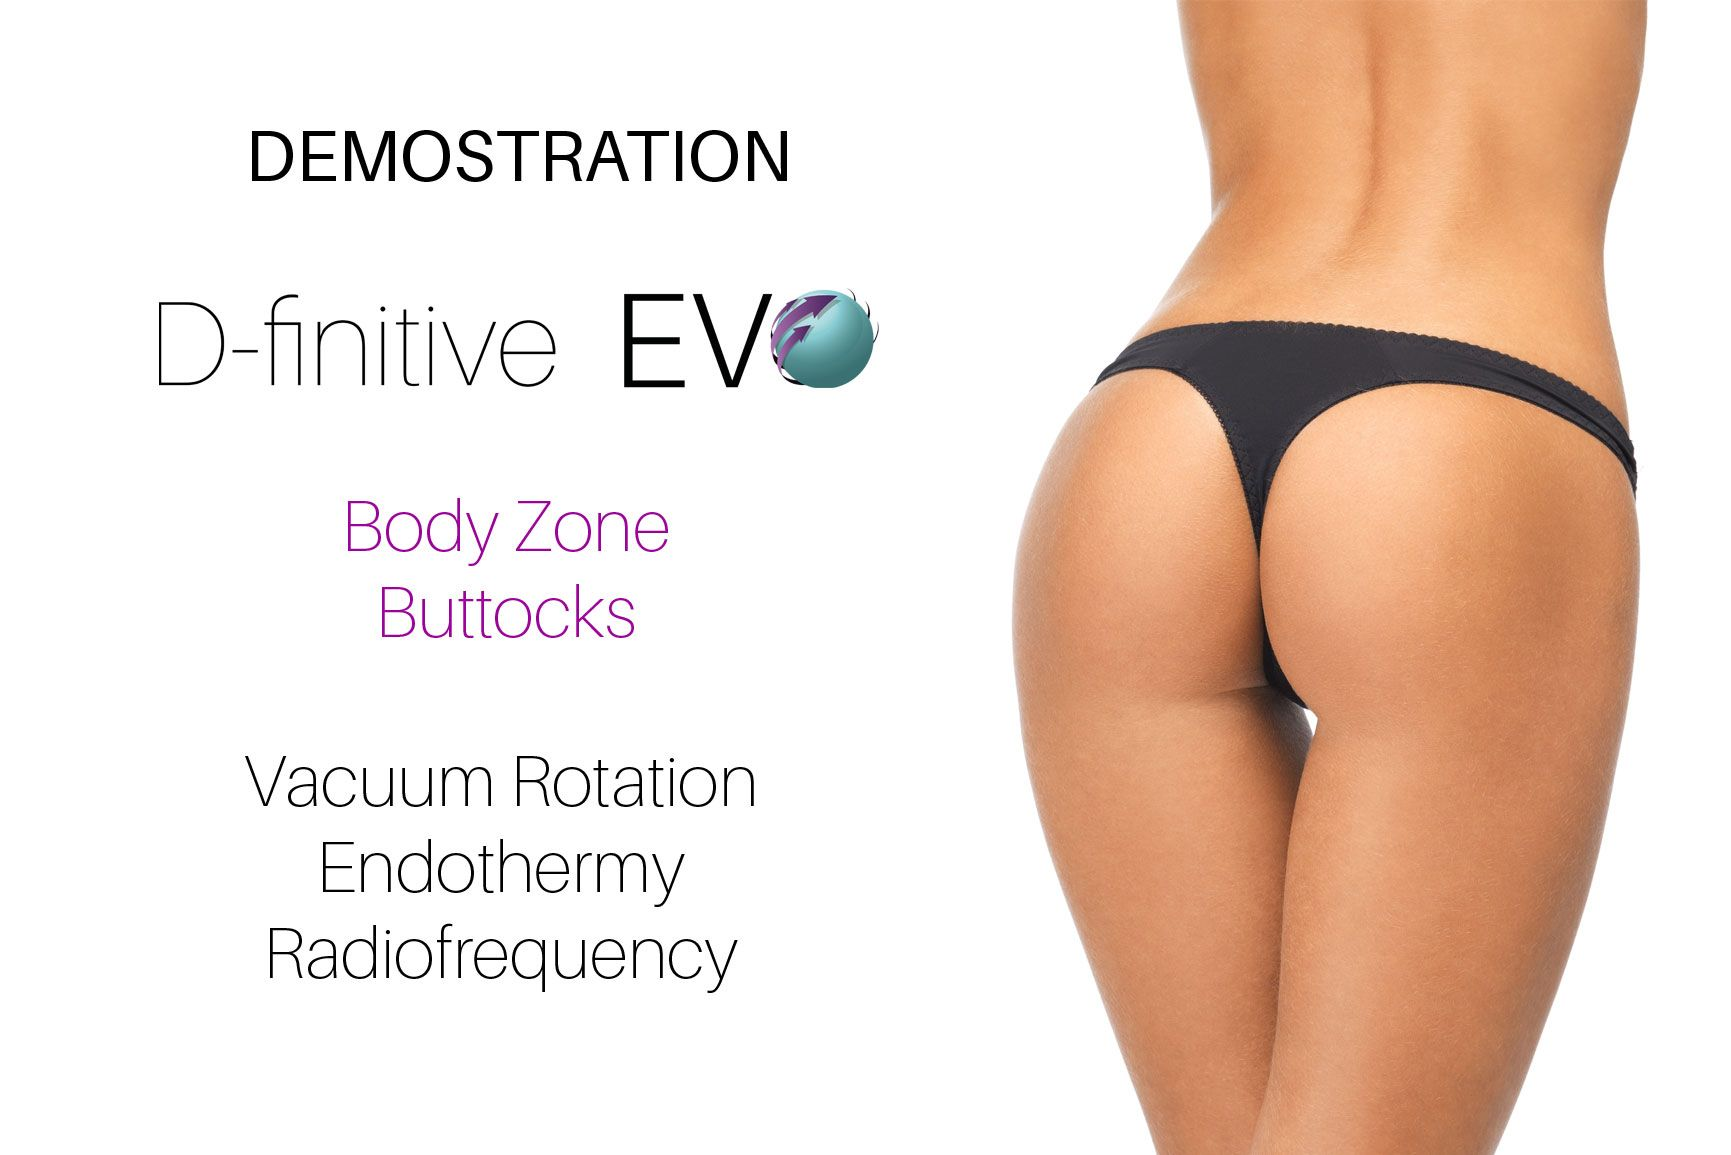 Demostration-D-Finitive-EVO-Radiofrequency-Vacuum-Endothermy